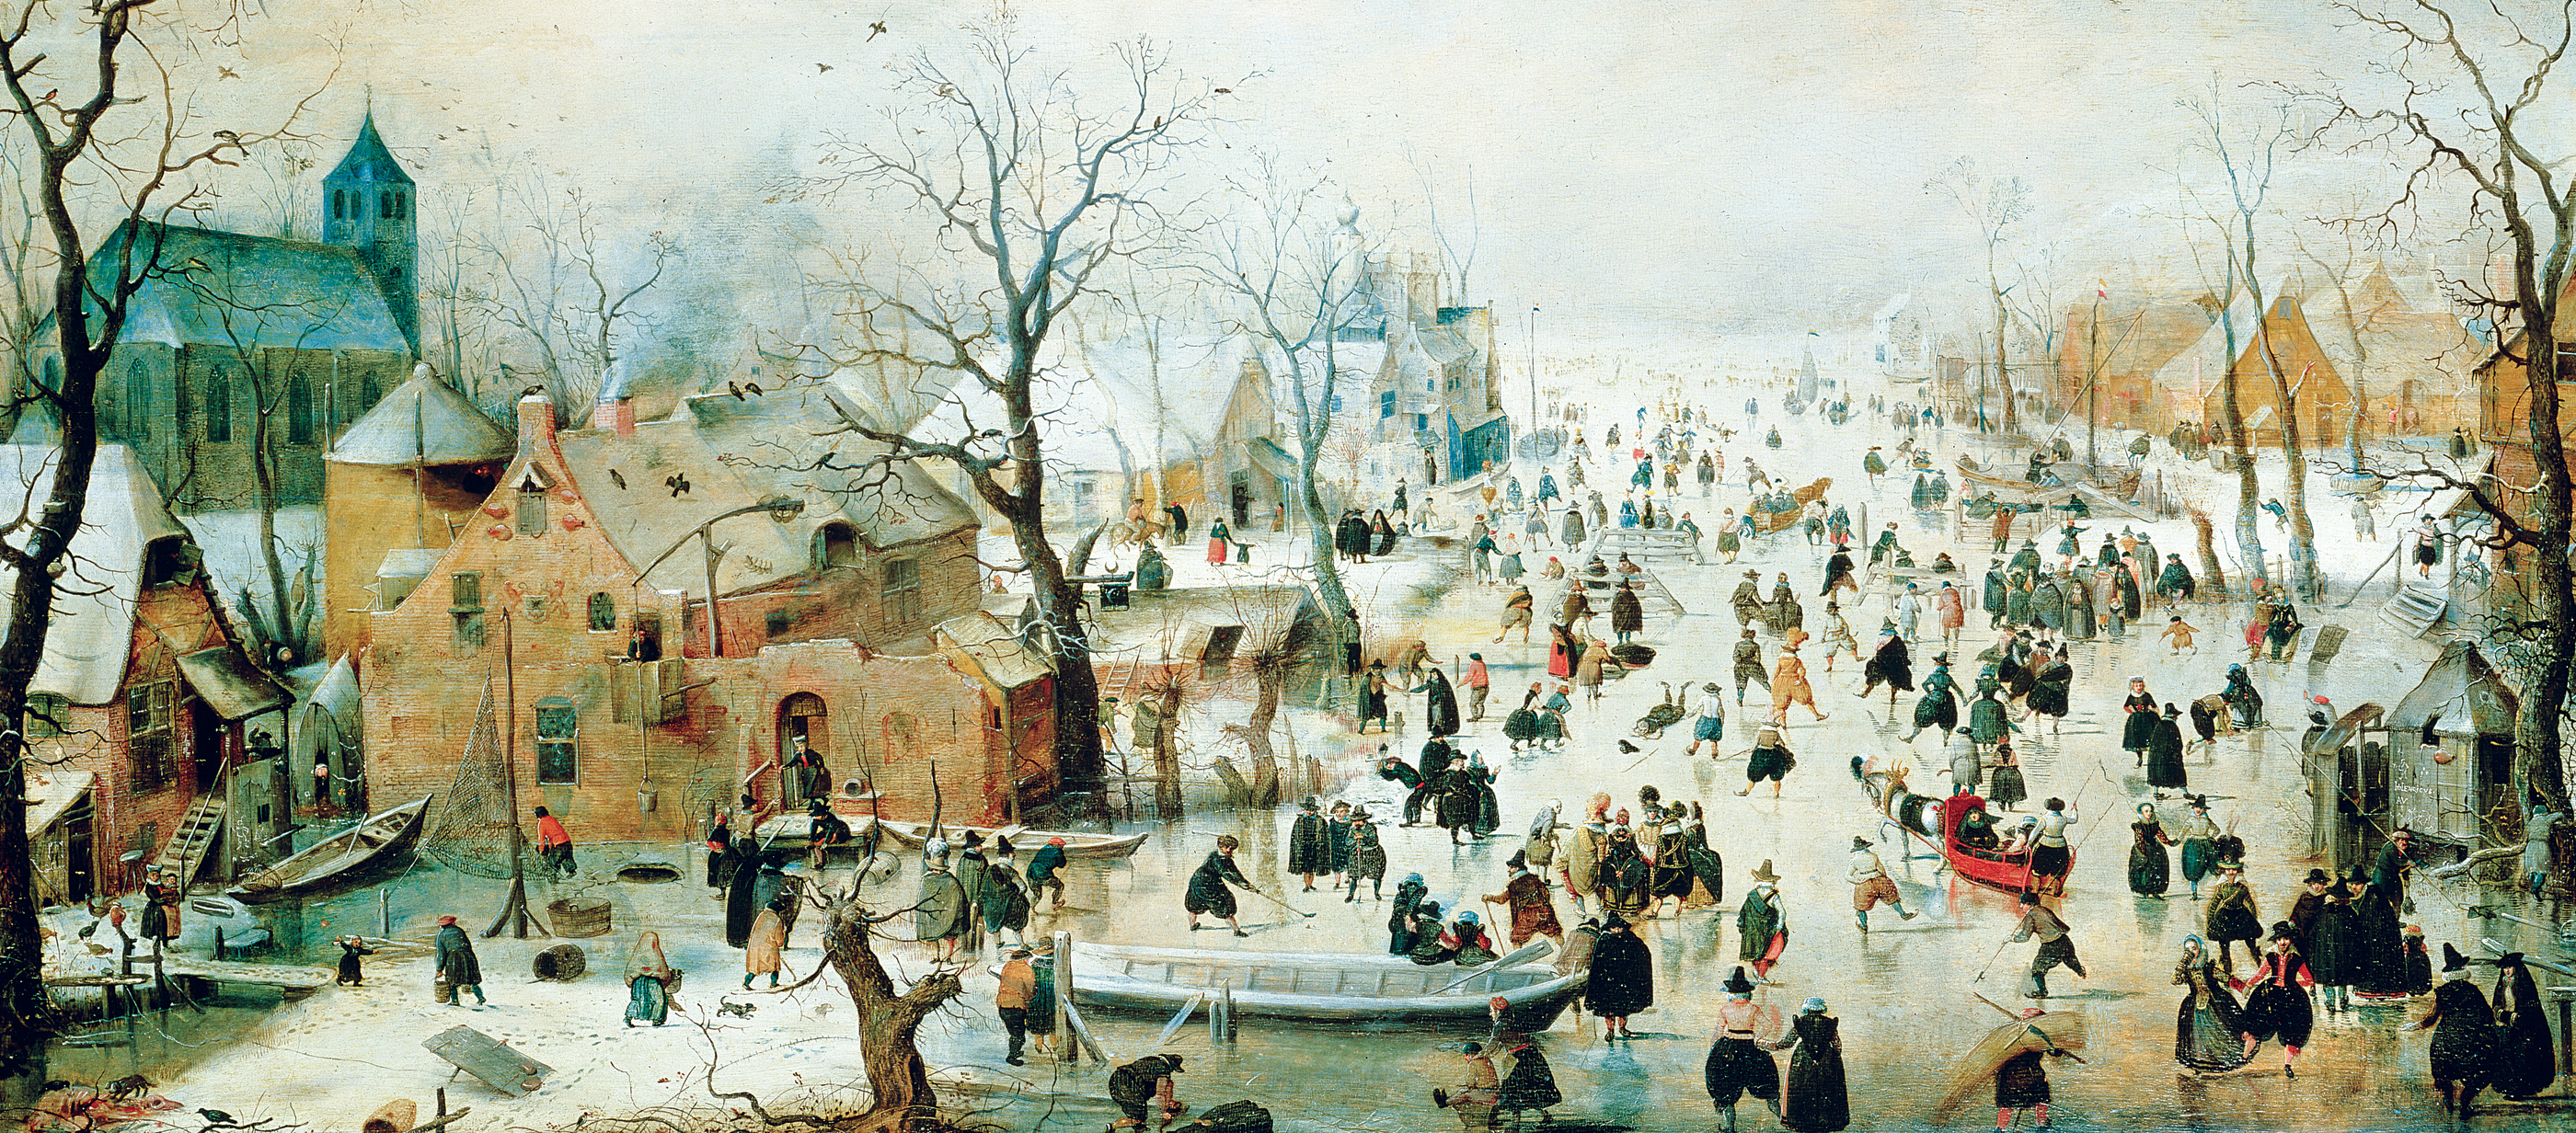 Winter Landscape with Ice Skaters, by Hendrick Avercamp, c. 1608. Rijksmuseum, Amsterdam, Netherlands.